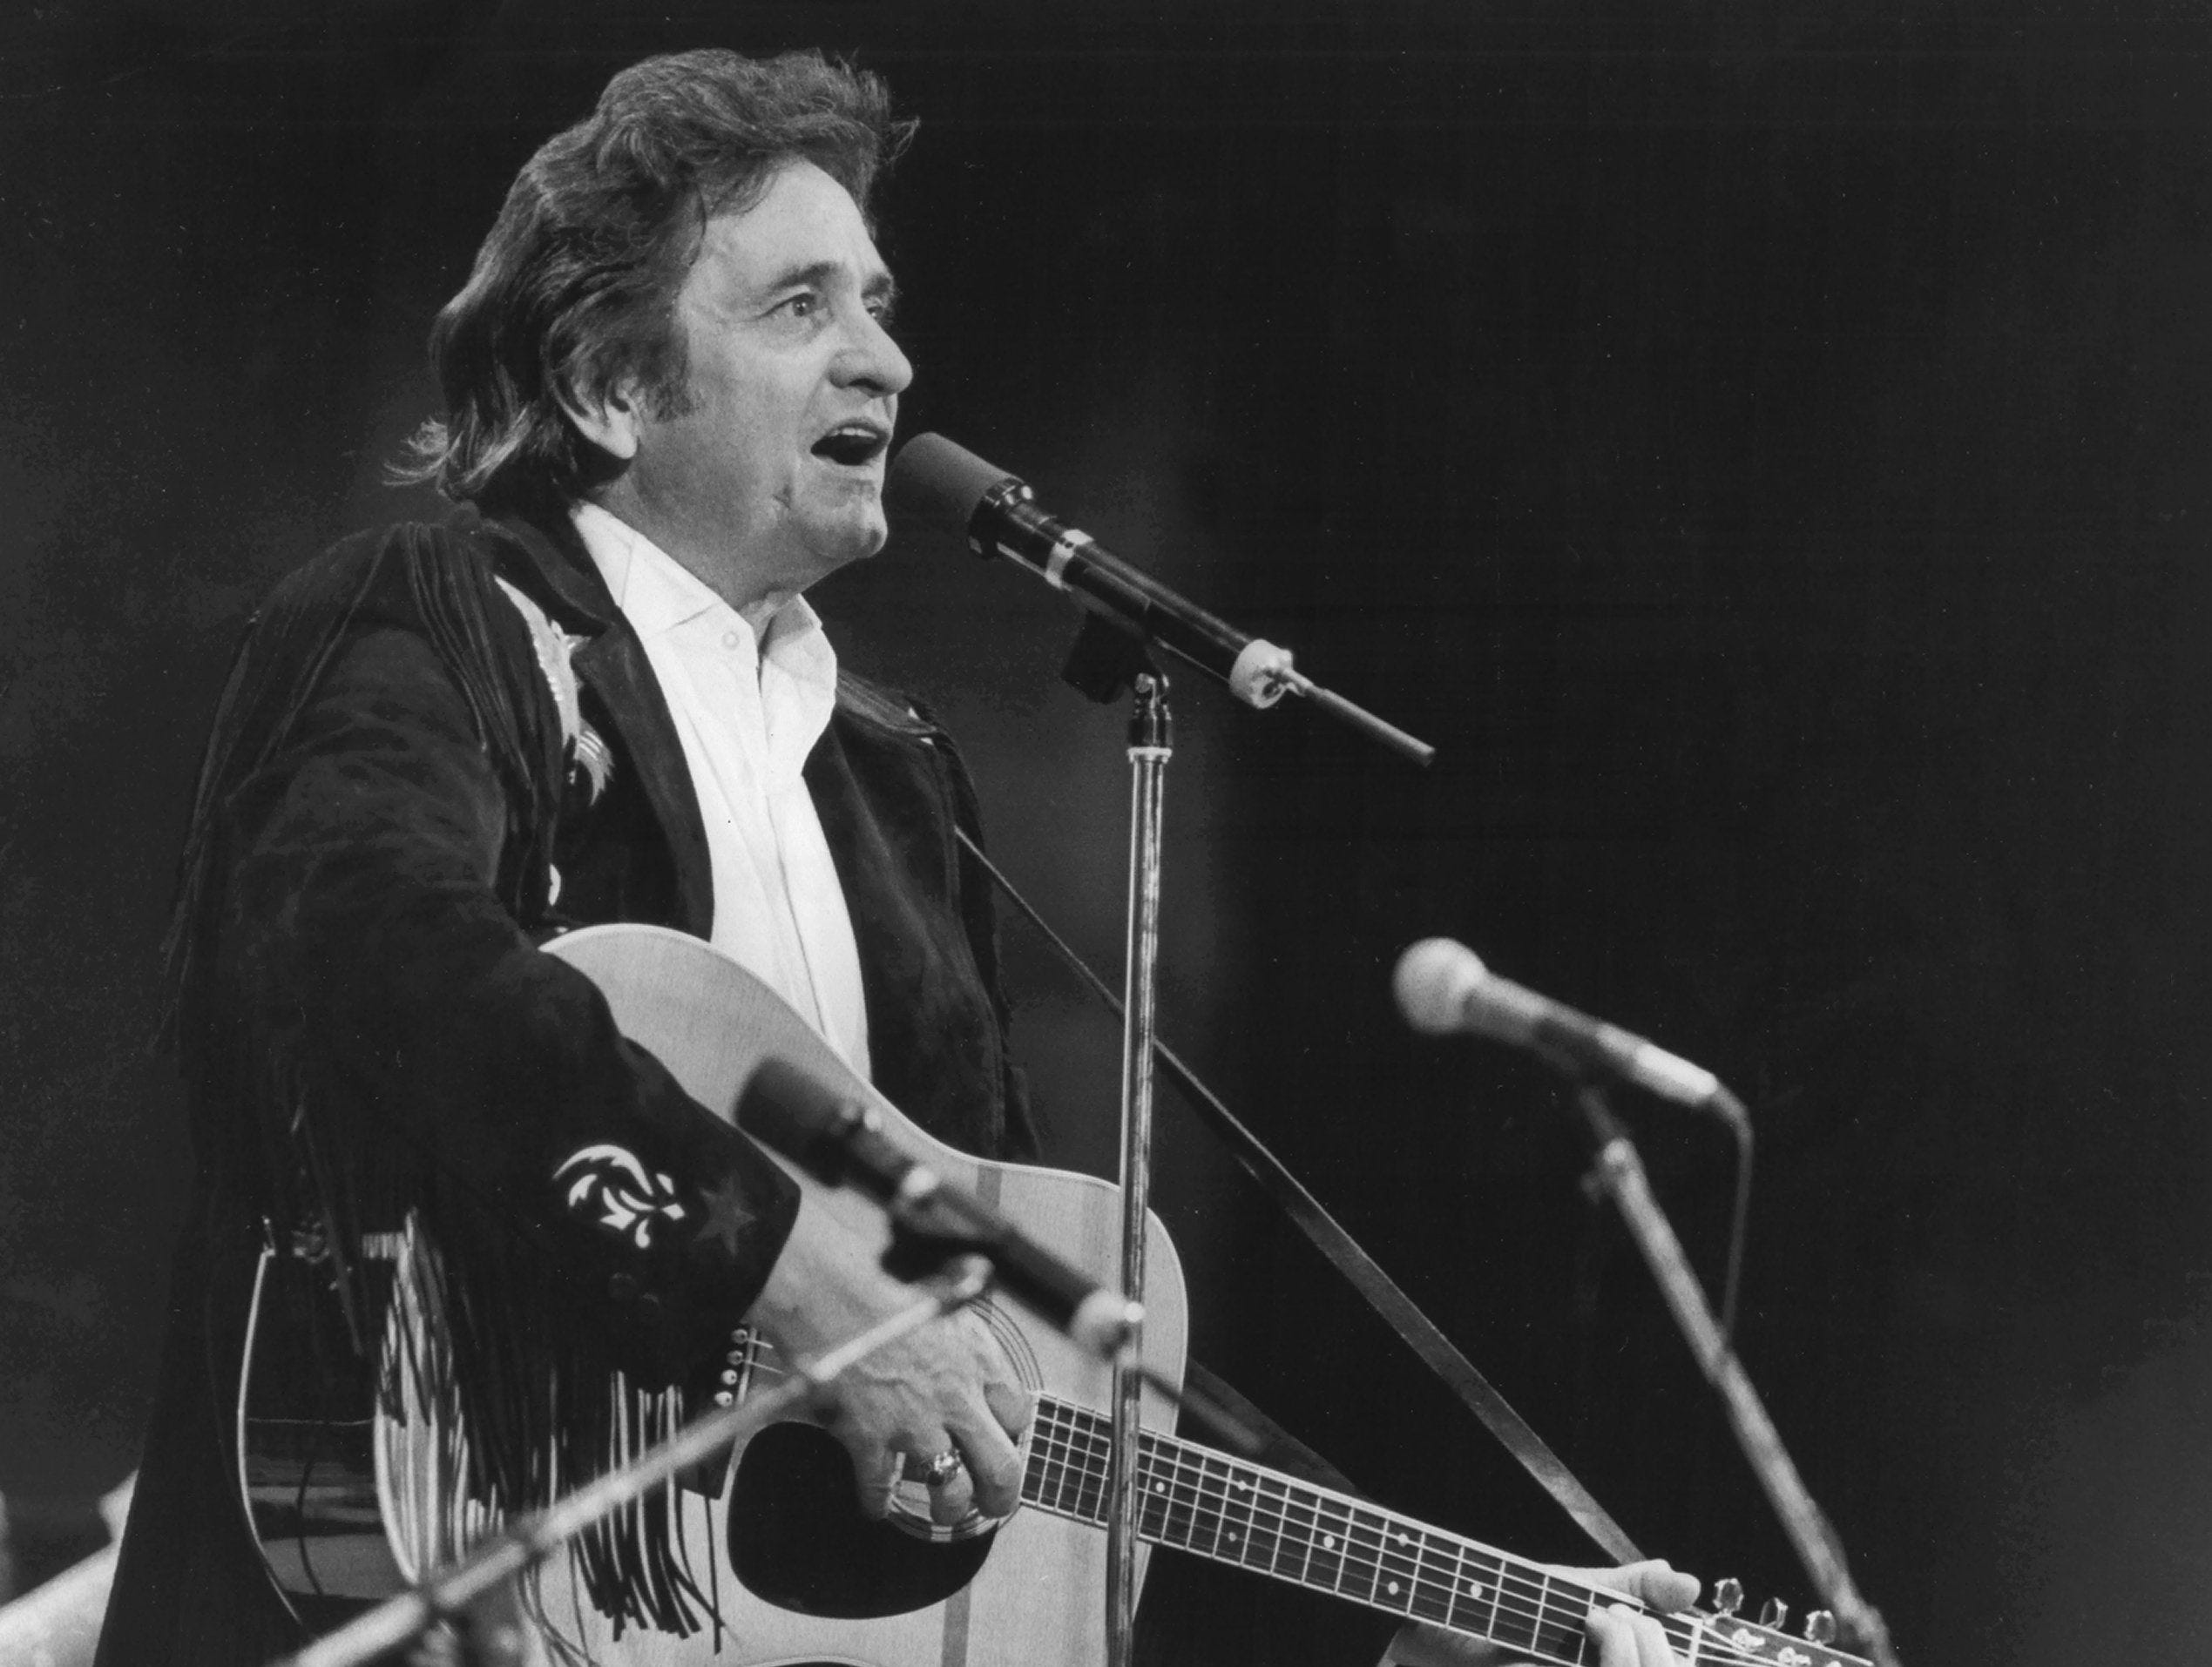 Johnny Cash brings his special brand of talent and entertainment to the 4,300-seat Mud Island amphitheater on 3 Sep 1982.